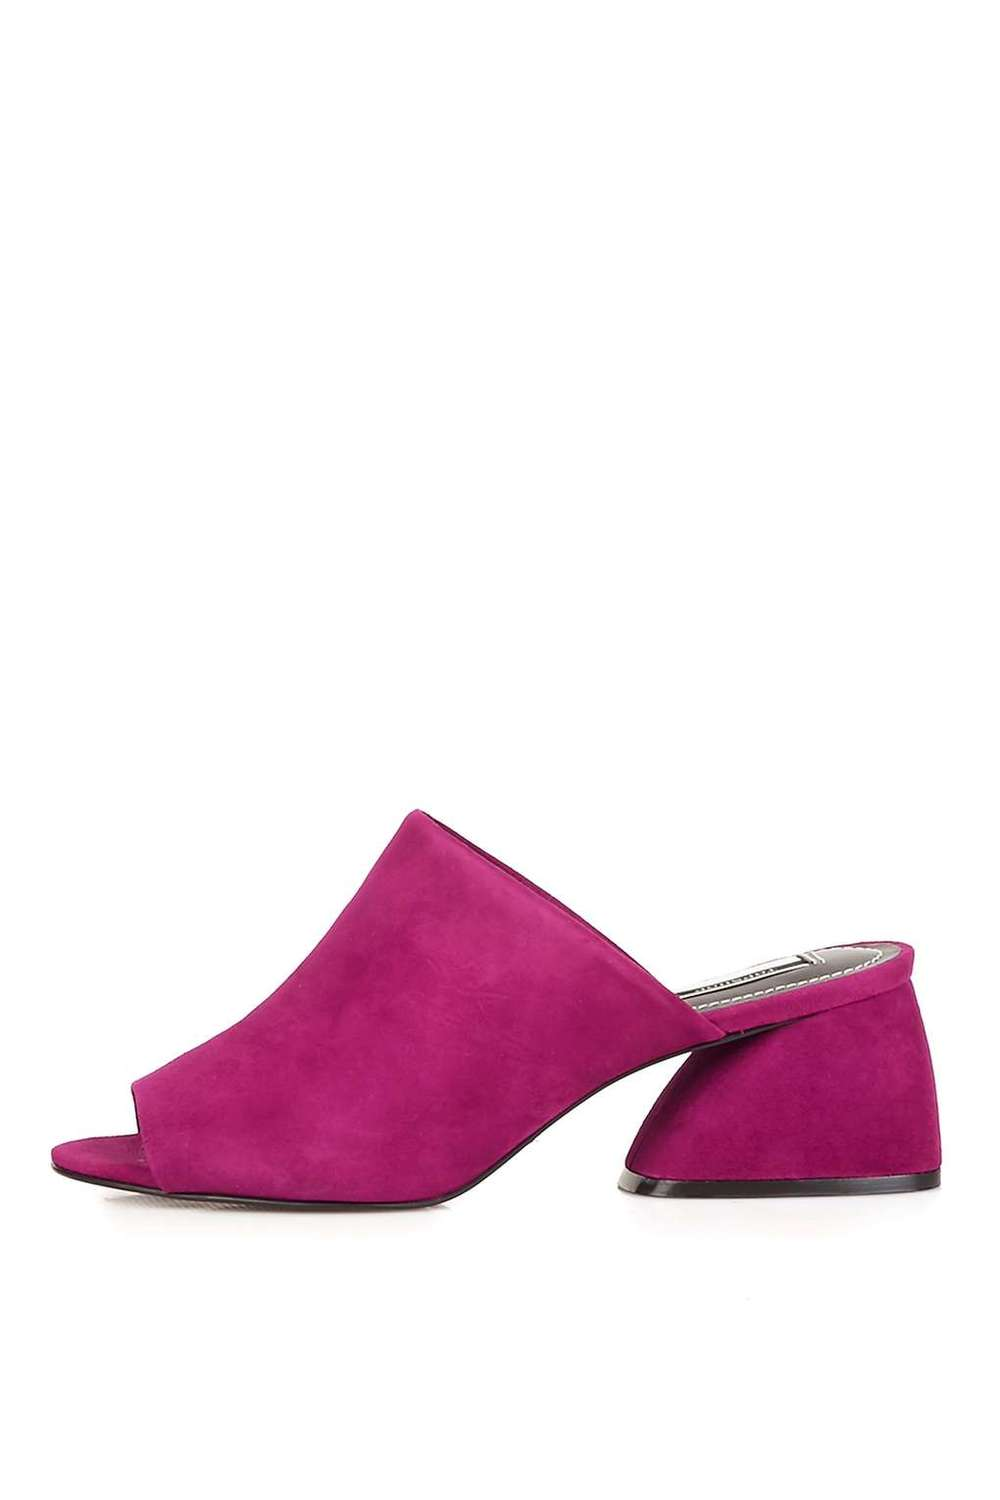 PERU Limited Edition Low Mules. Multiple colors available. Topshop. $150.